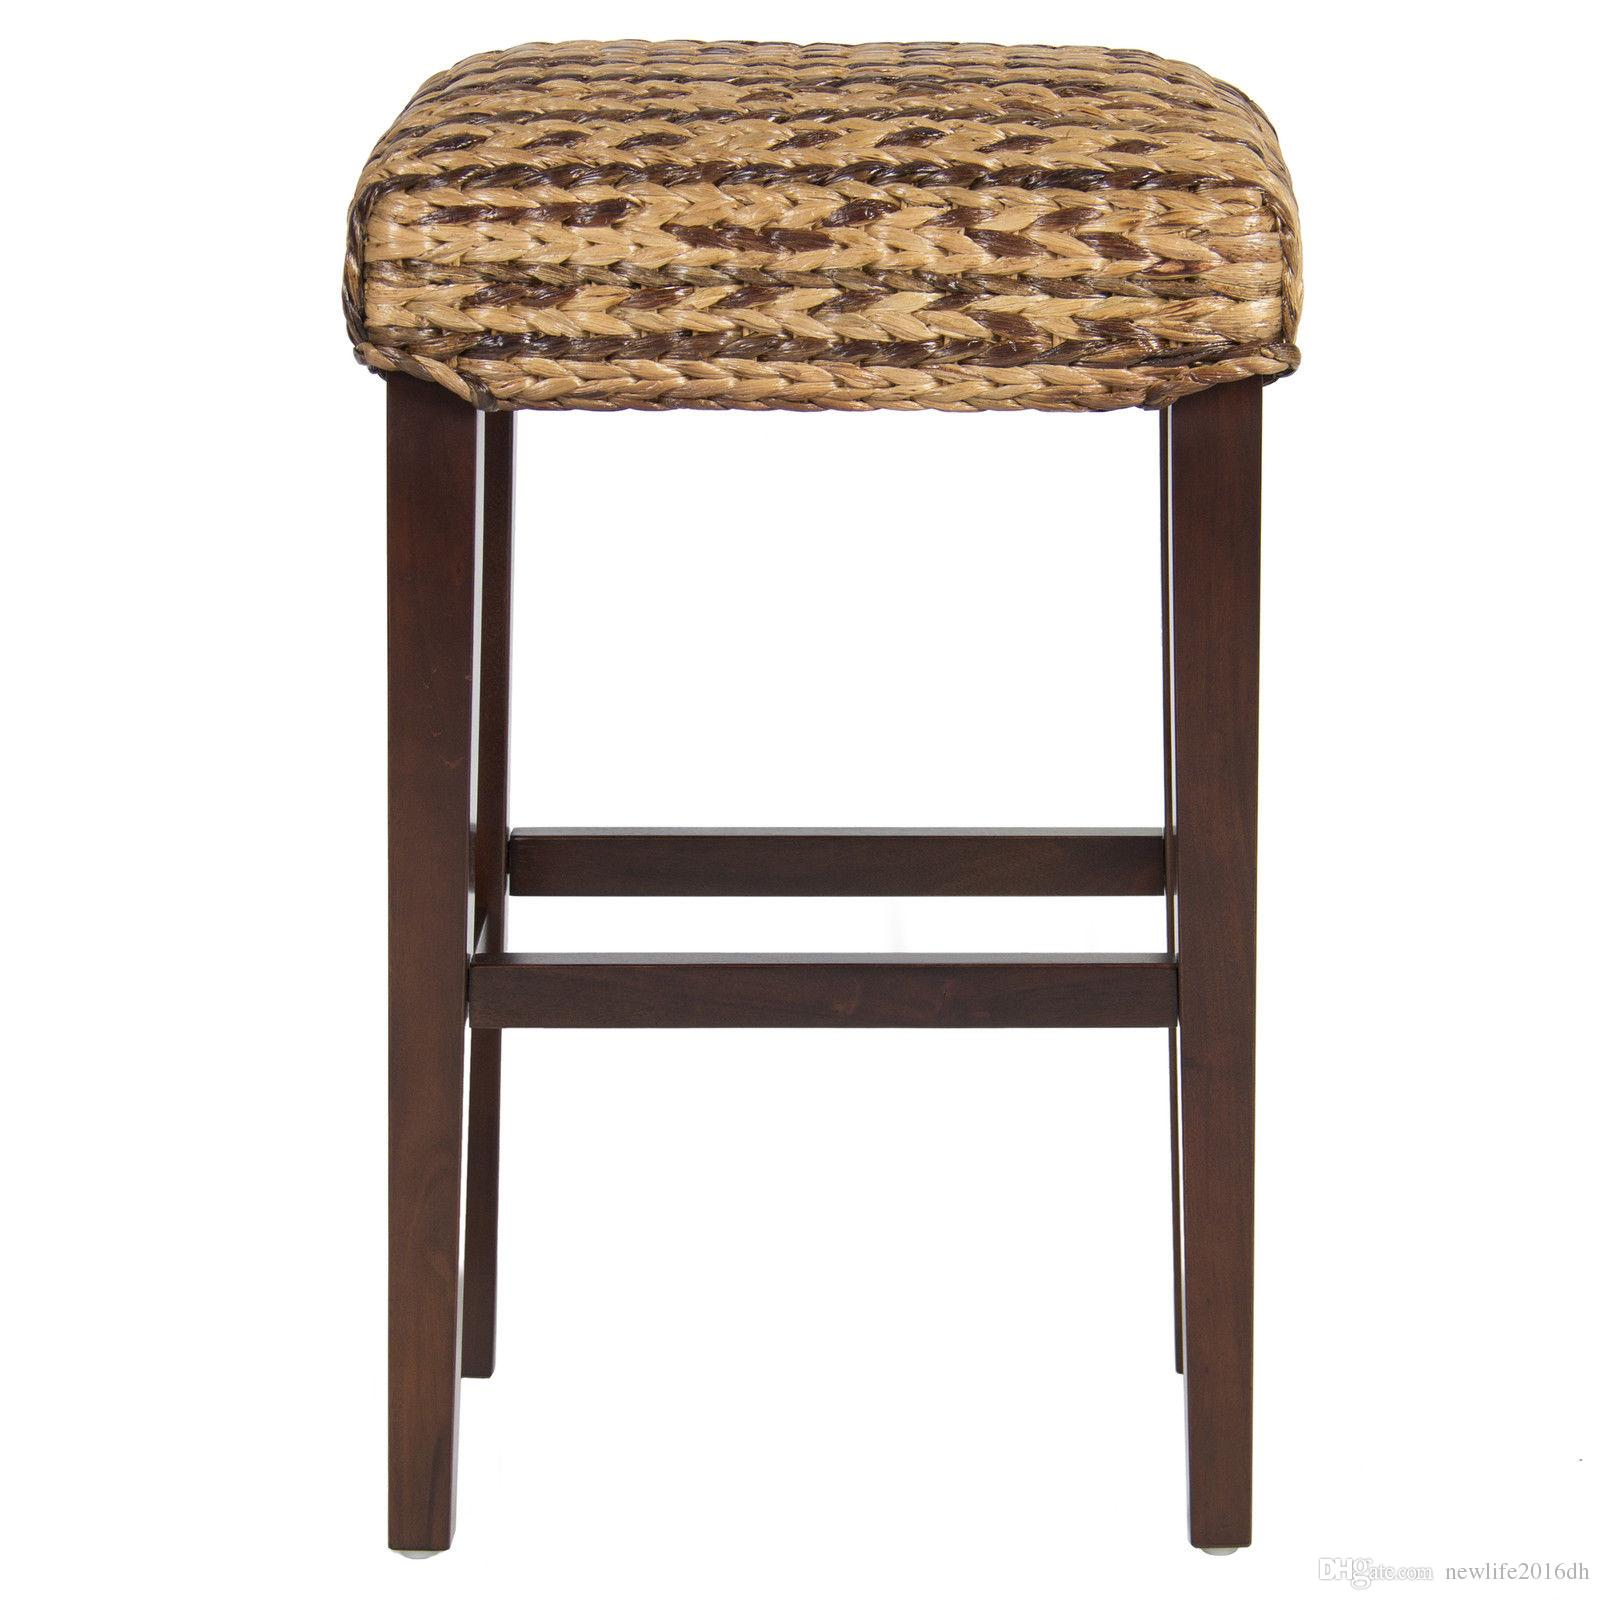 2018 bcp set of 2 hand woven seagrass bar stools mahogany wood frame bar height from newlife2016dh 135 68 dhgate com